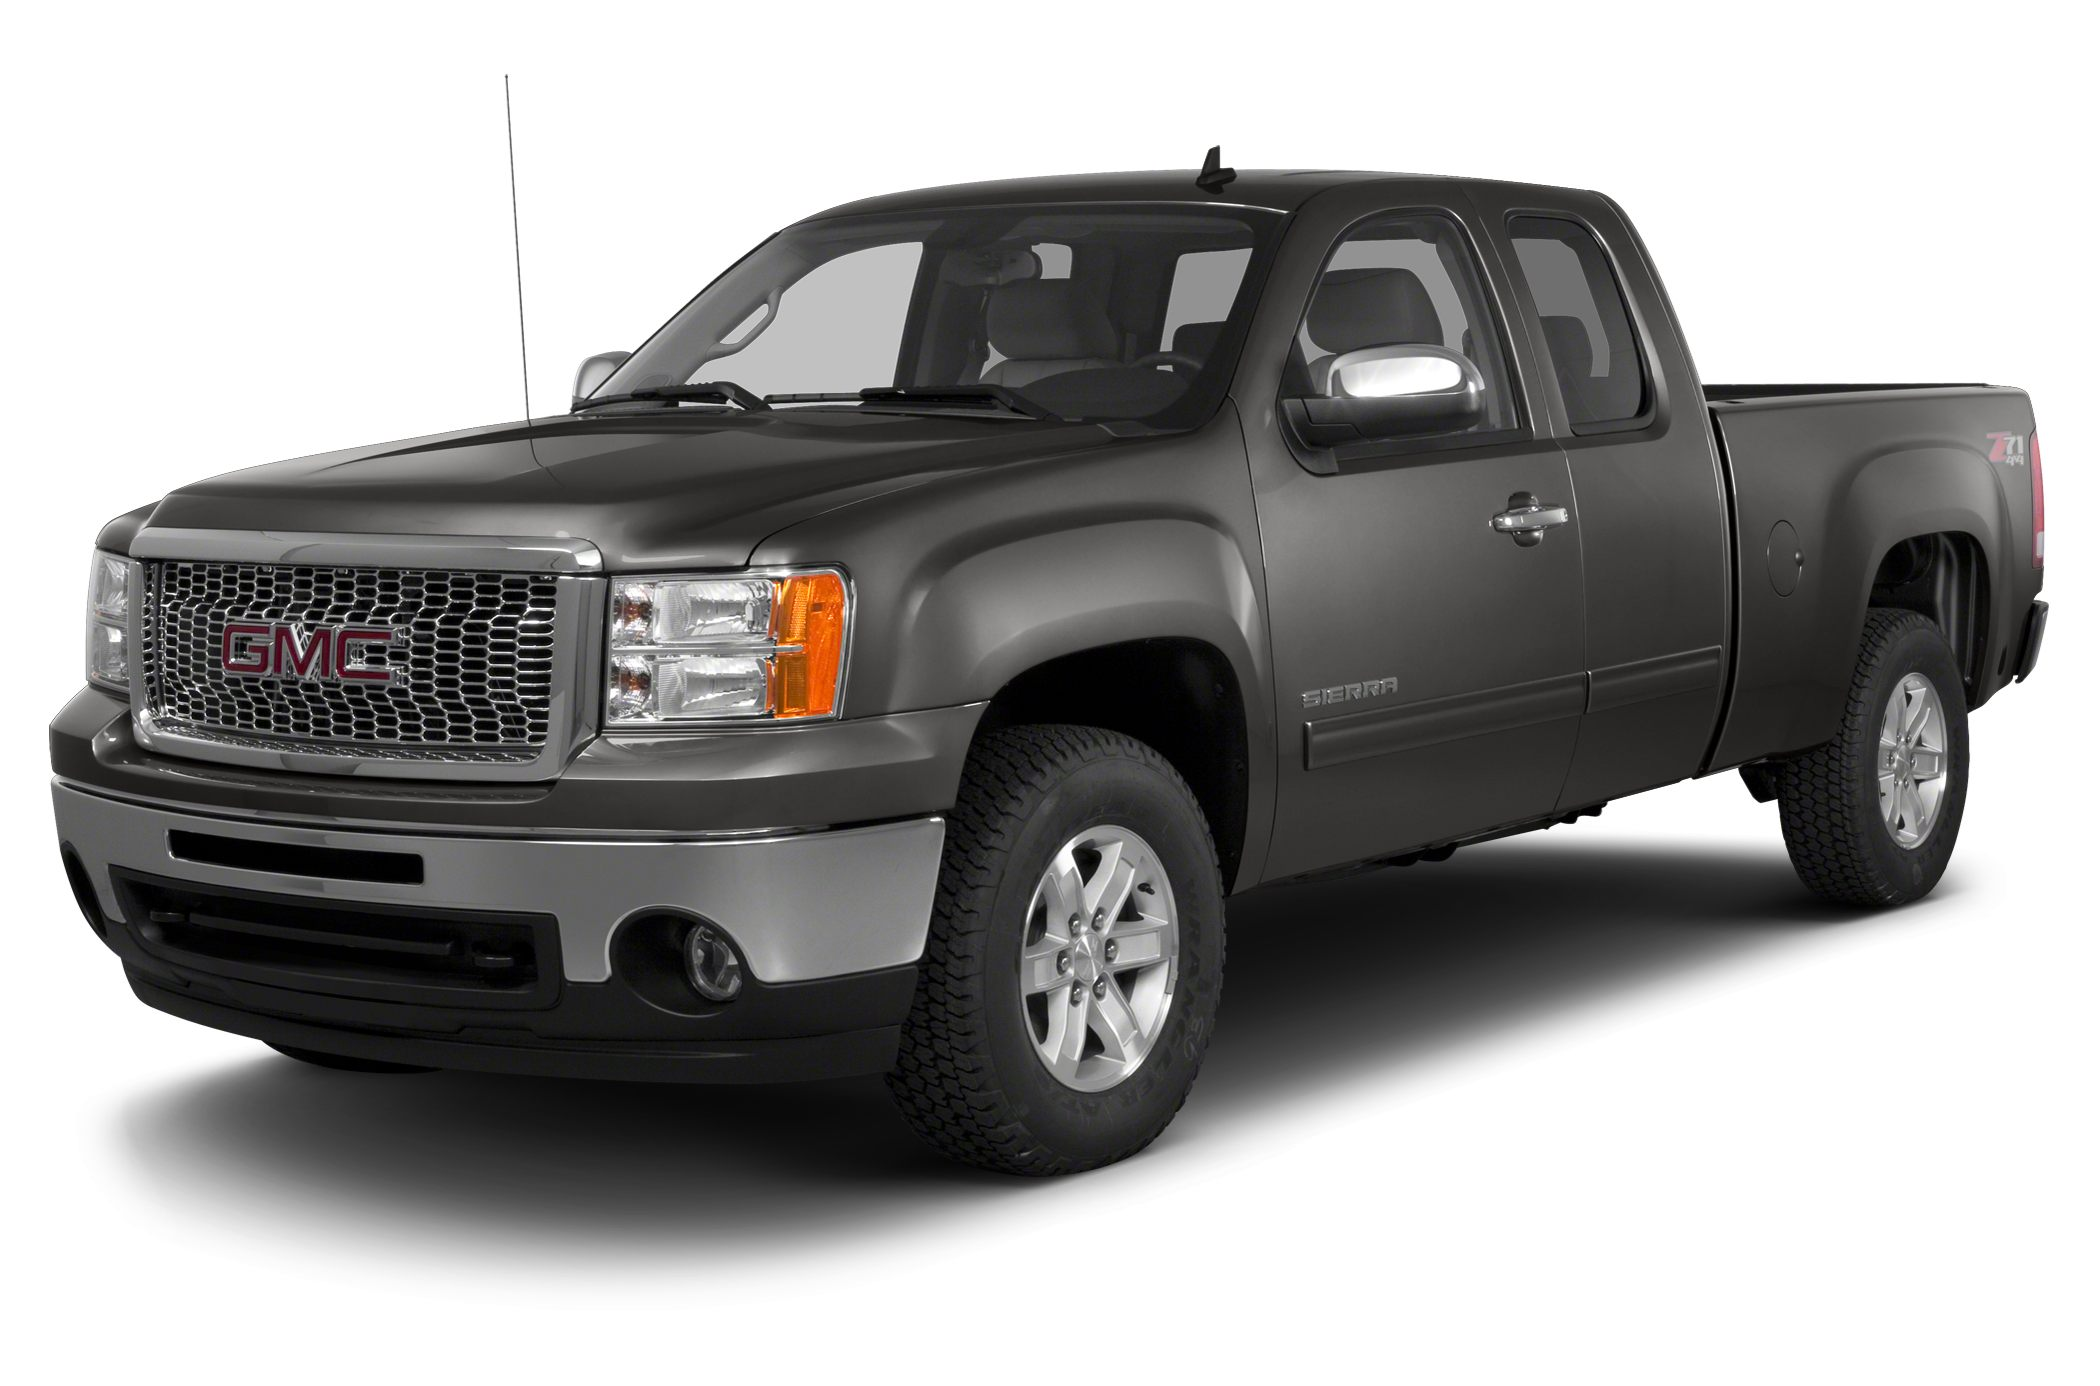 2013 GMC Sierra 1500 SLE ITS OUR 50TH ANNIVERSARY HERE AT MARTYS AND TO CELEBRATE WERE OFFERING